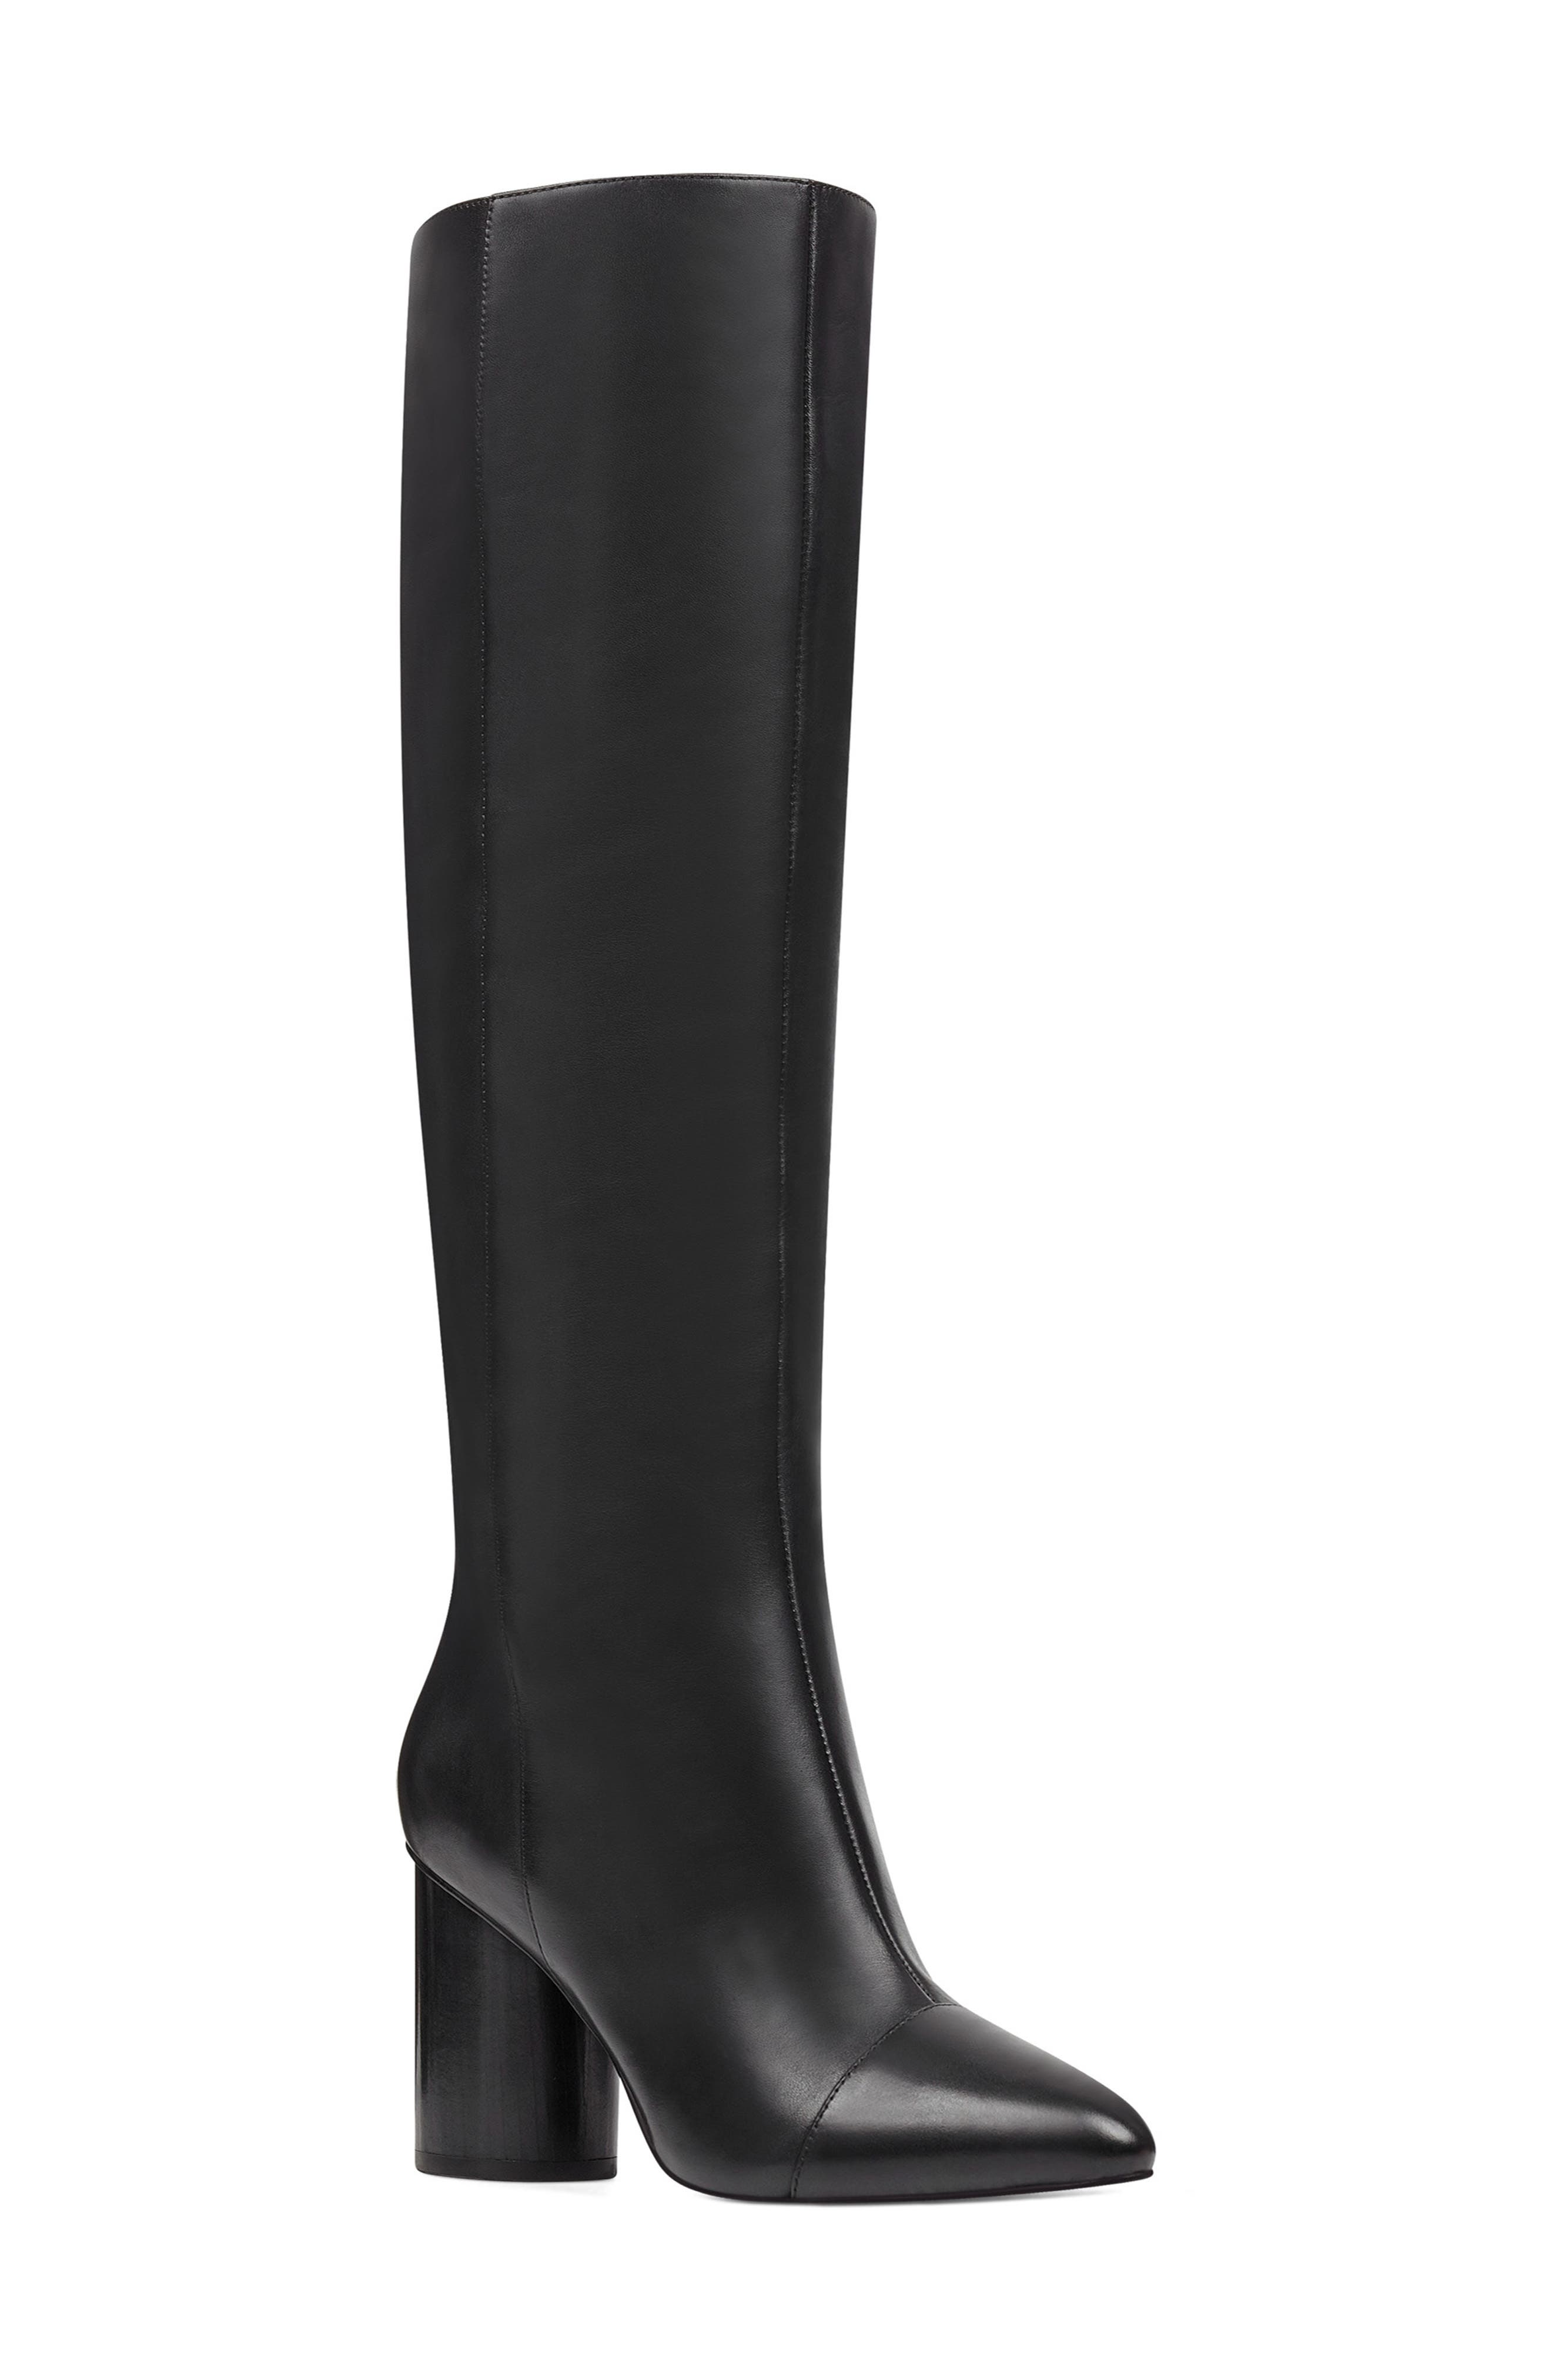 Nine West Cheyin Cap Toe Knee High Boot, Black